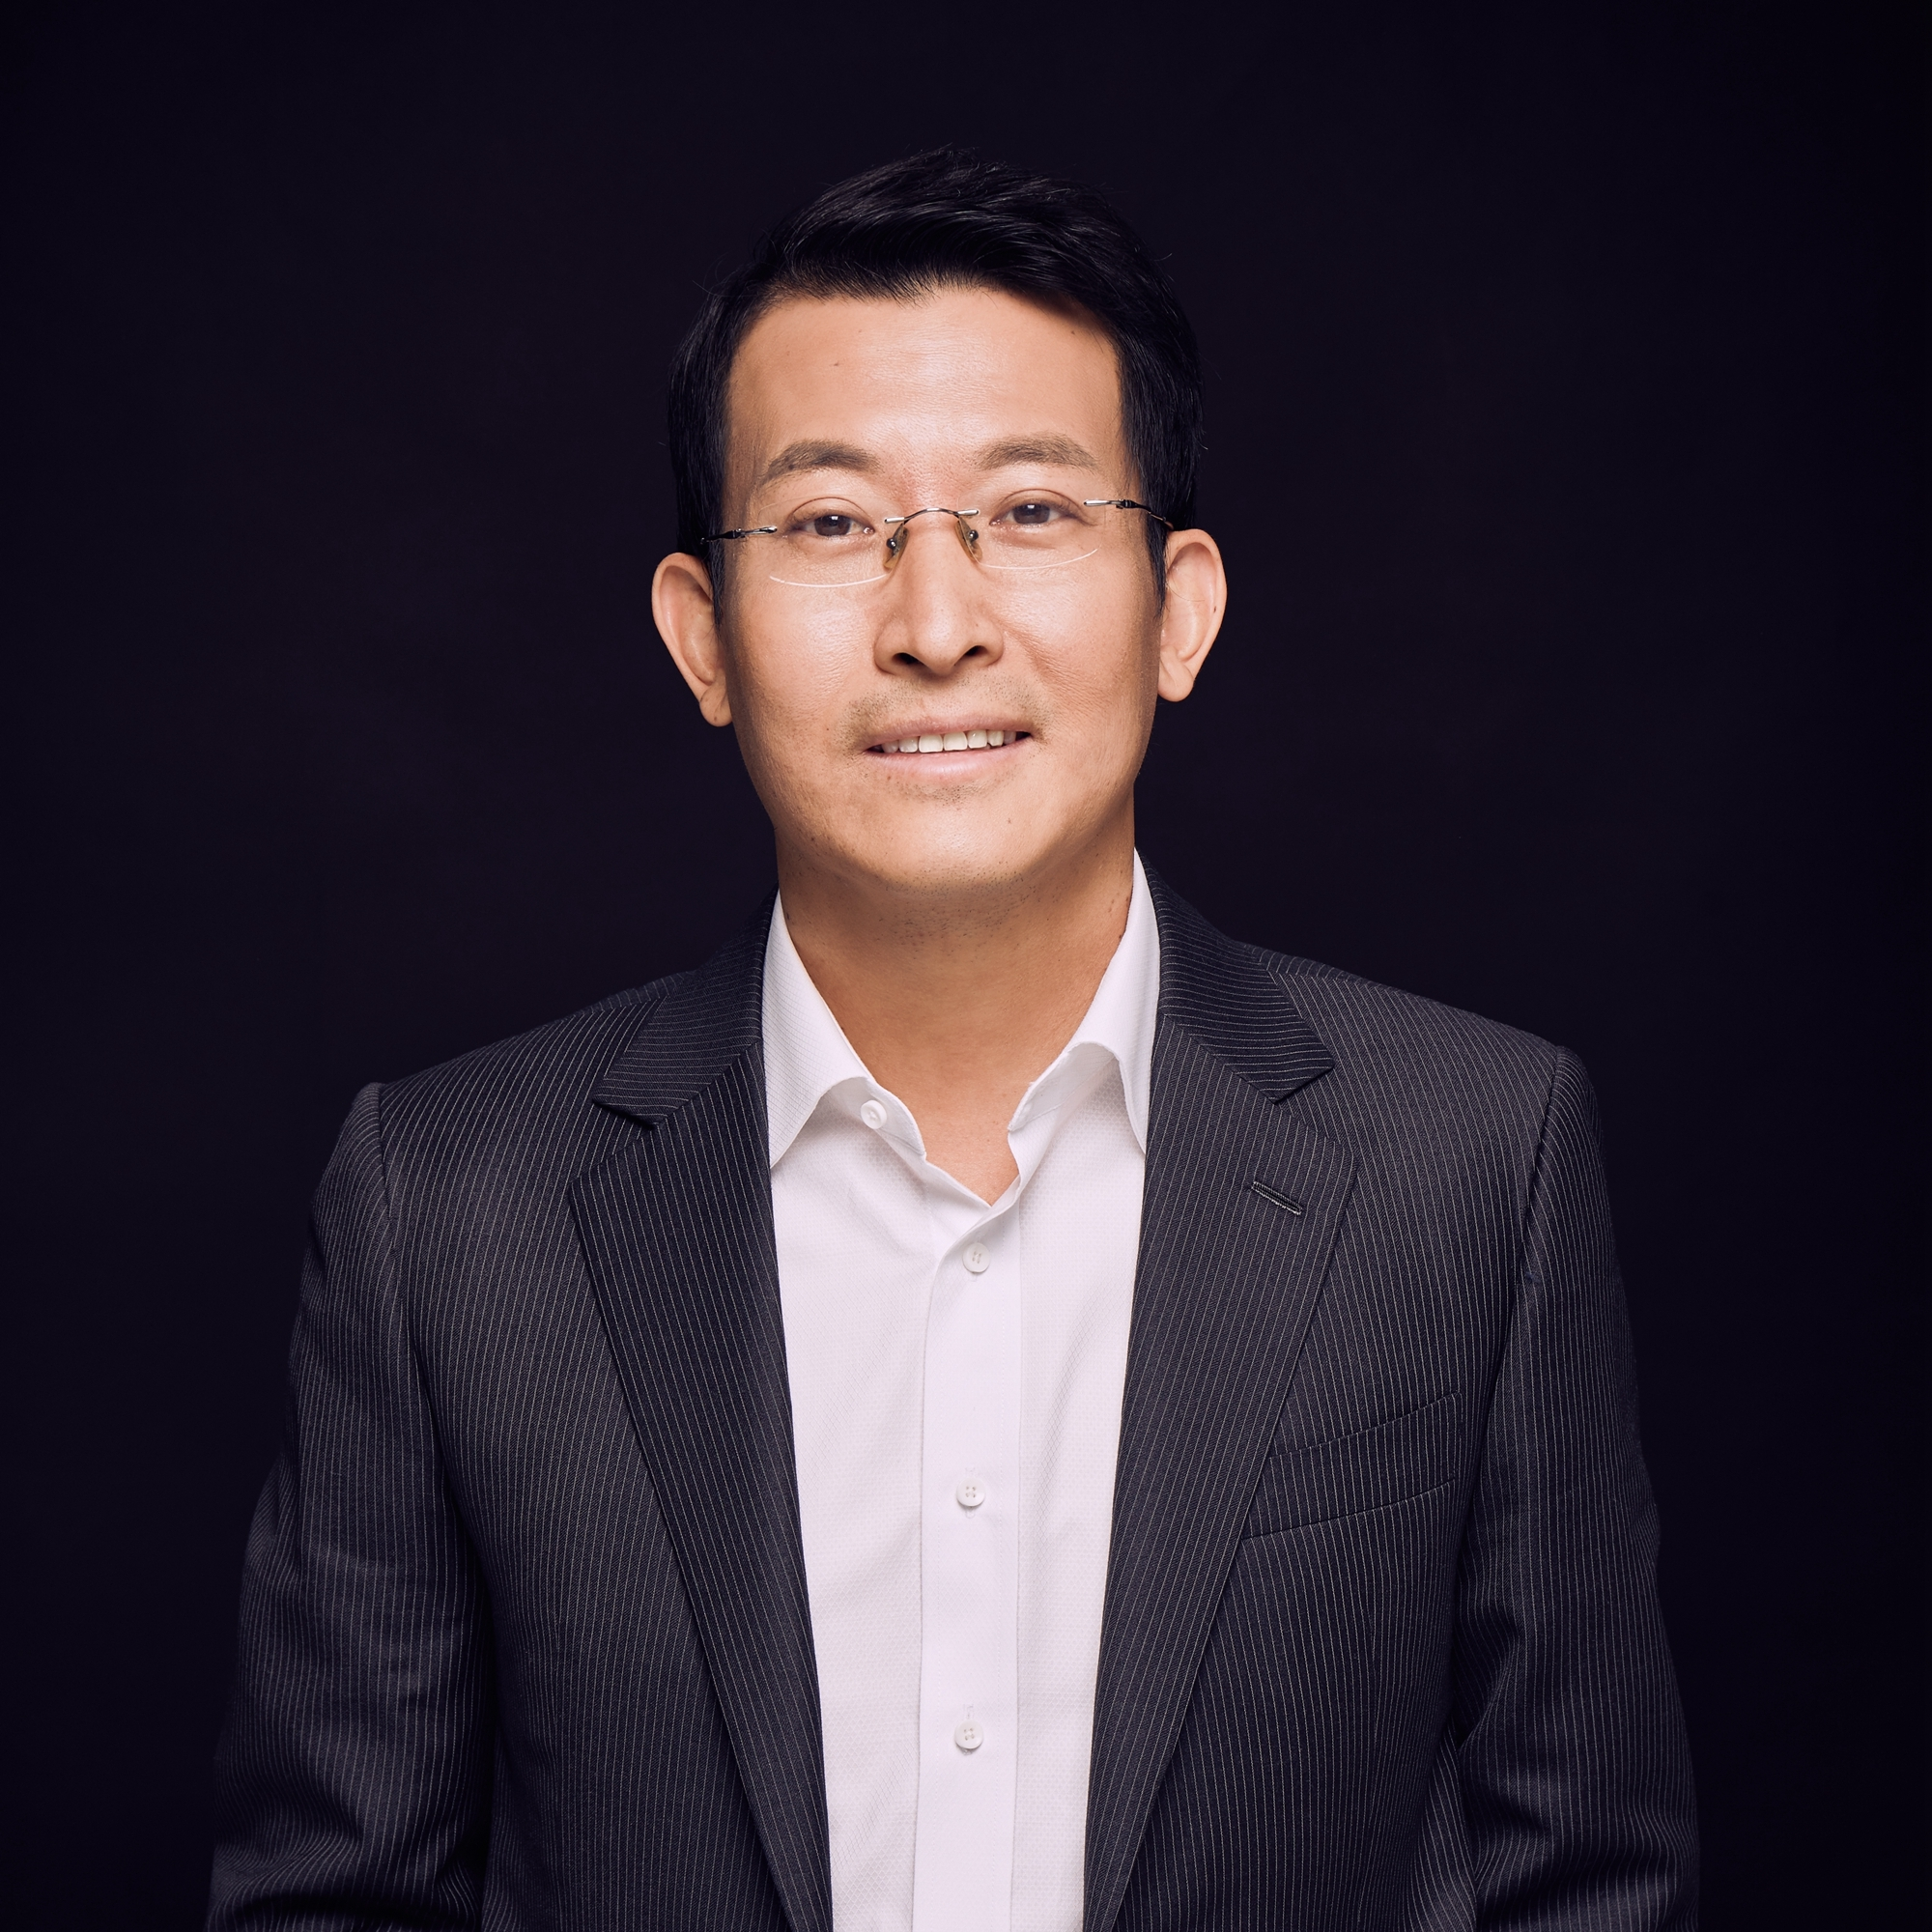 "<p><strong>Hao Cheng</strong>Founding Partner, iVision Ventures; Co-founder, Xunlei<a href=""/area-of-your-site""></a></p>"